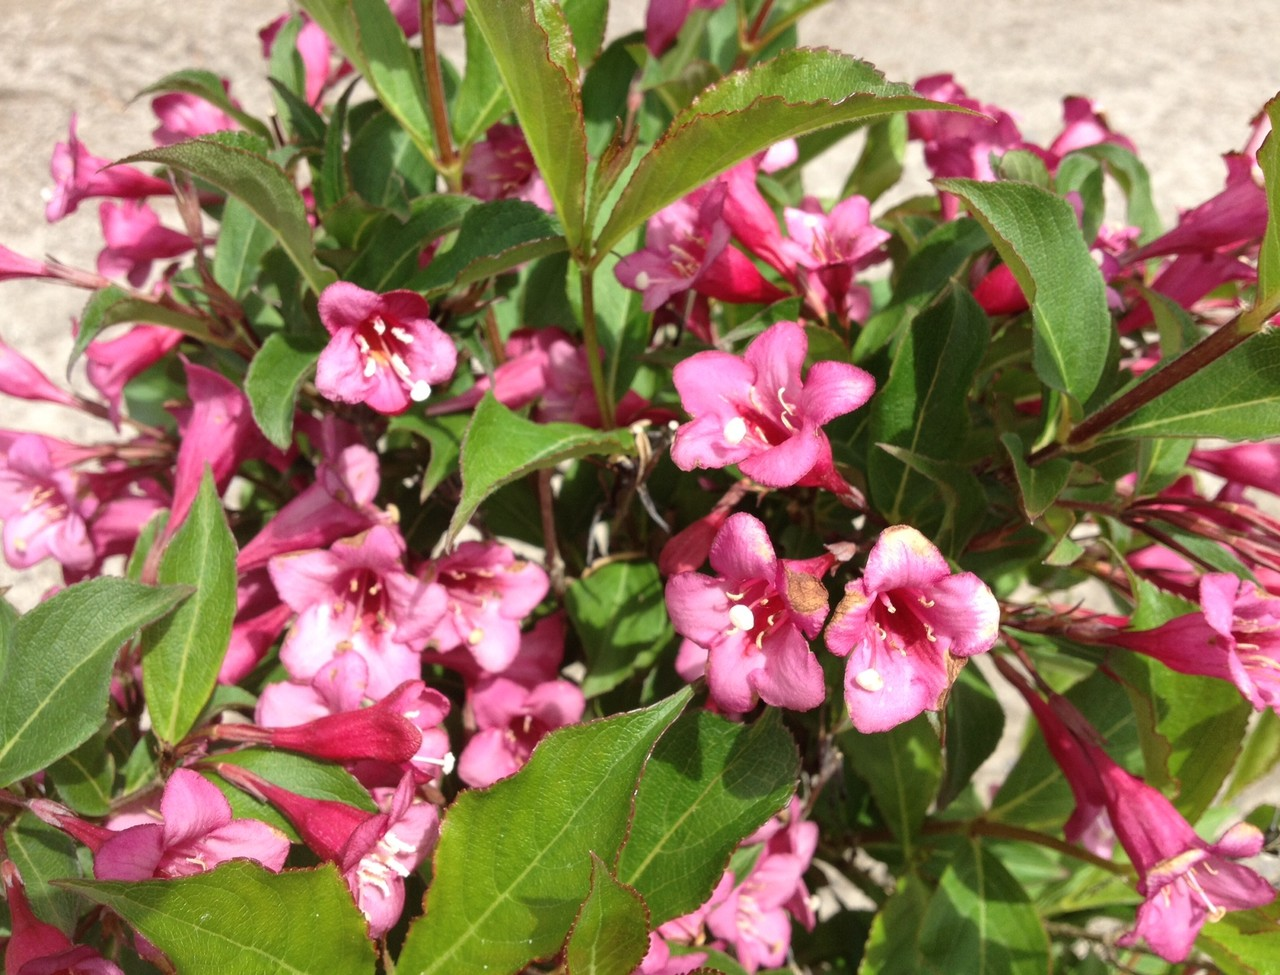 Weigela florida 'Rumba'